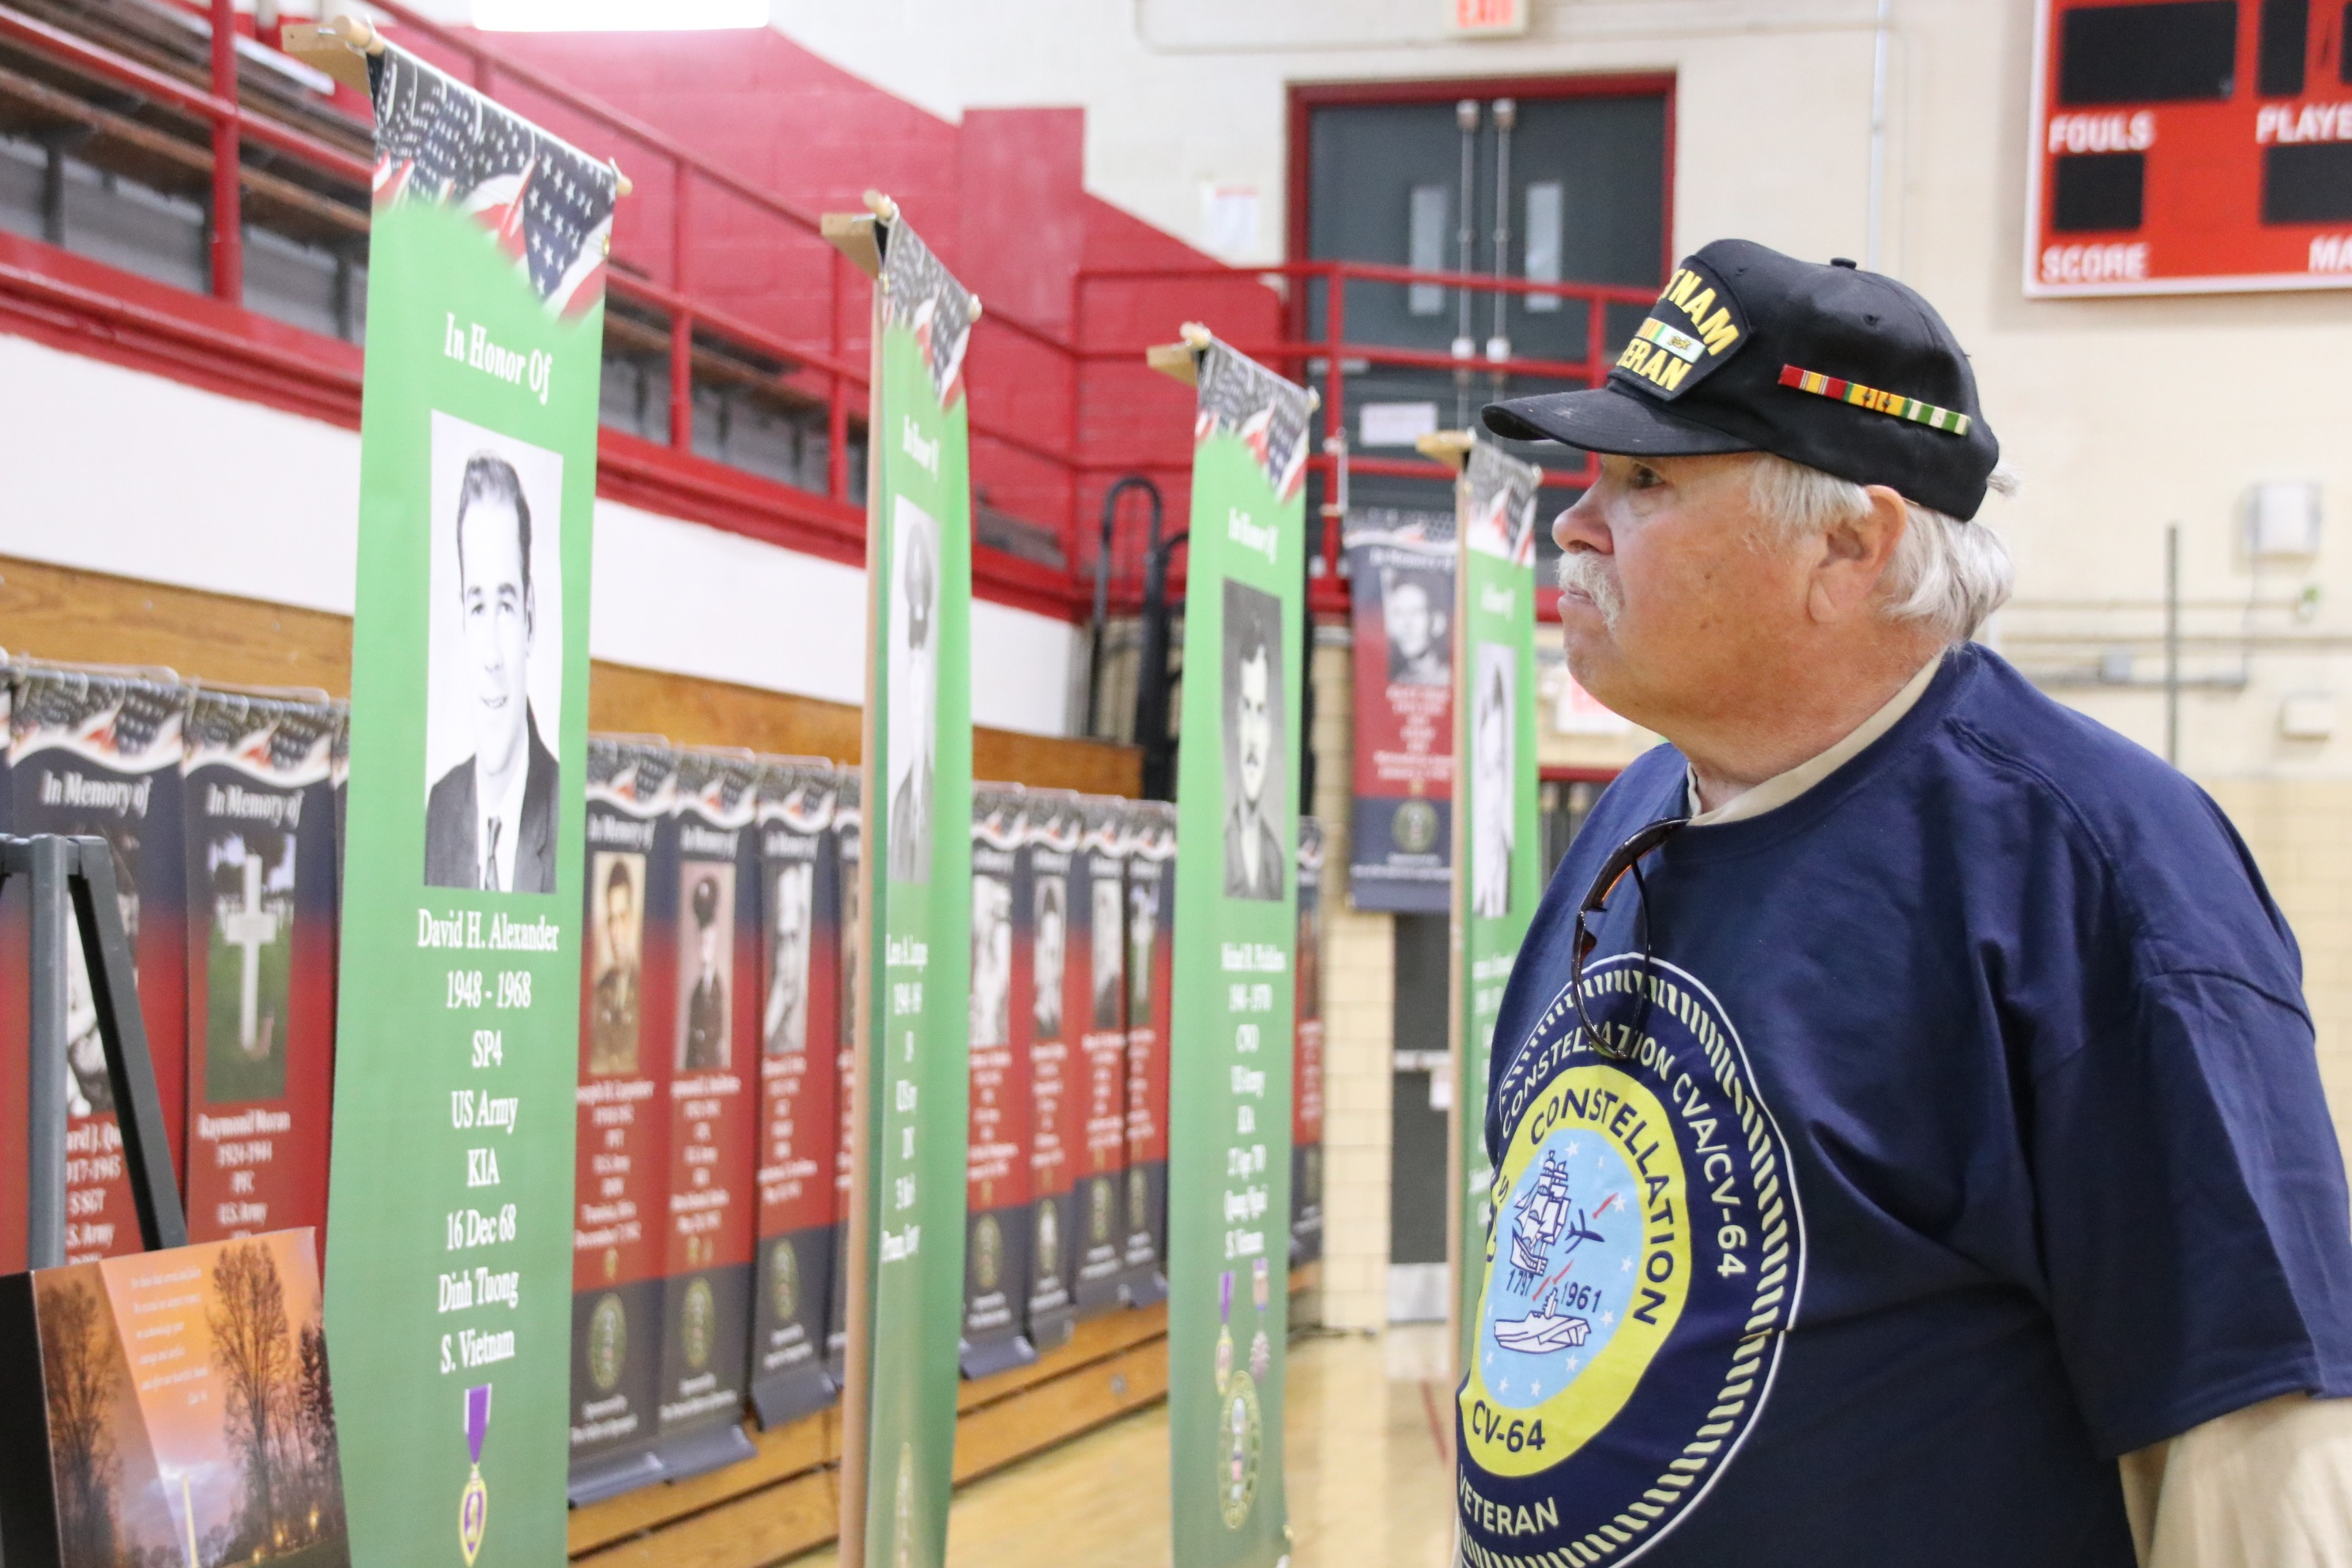 John Crystal of Sanford, a U.S. Navy veteran of the Vietnam War, looks at banners depicting fellow service members who were killed in action during a memorial ceremony at Sanford Veterans Memorial Gym in Sanford Tuesday. TAMMY WELLS/Journal Tribune